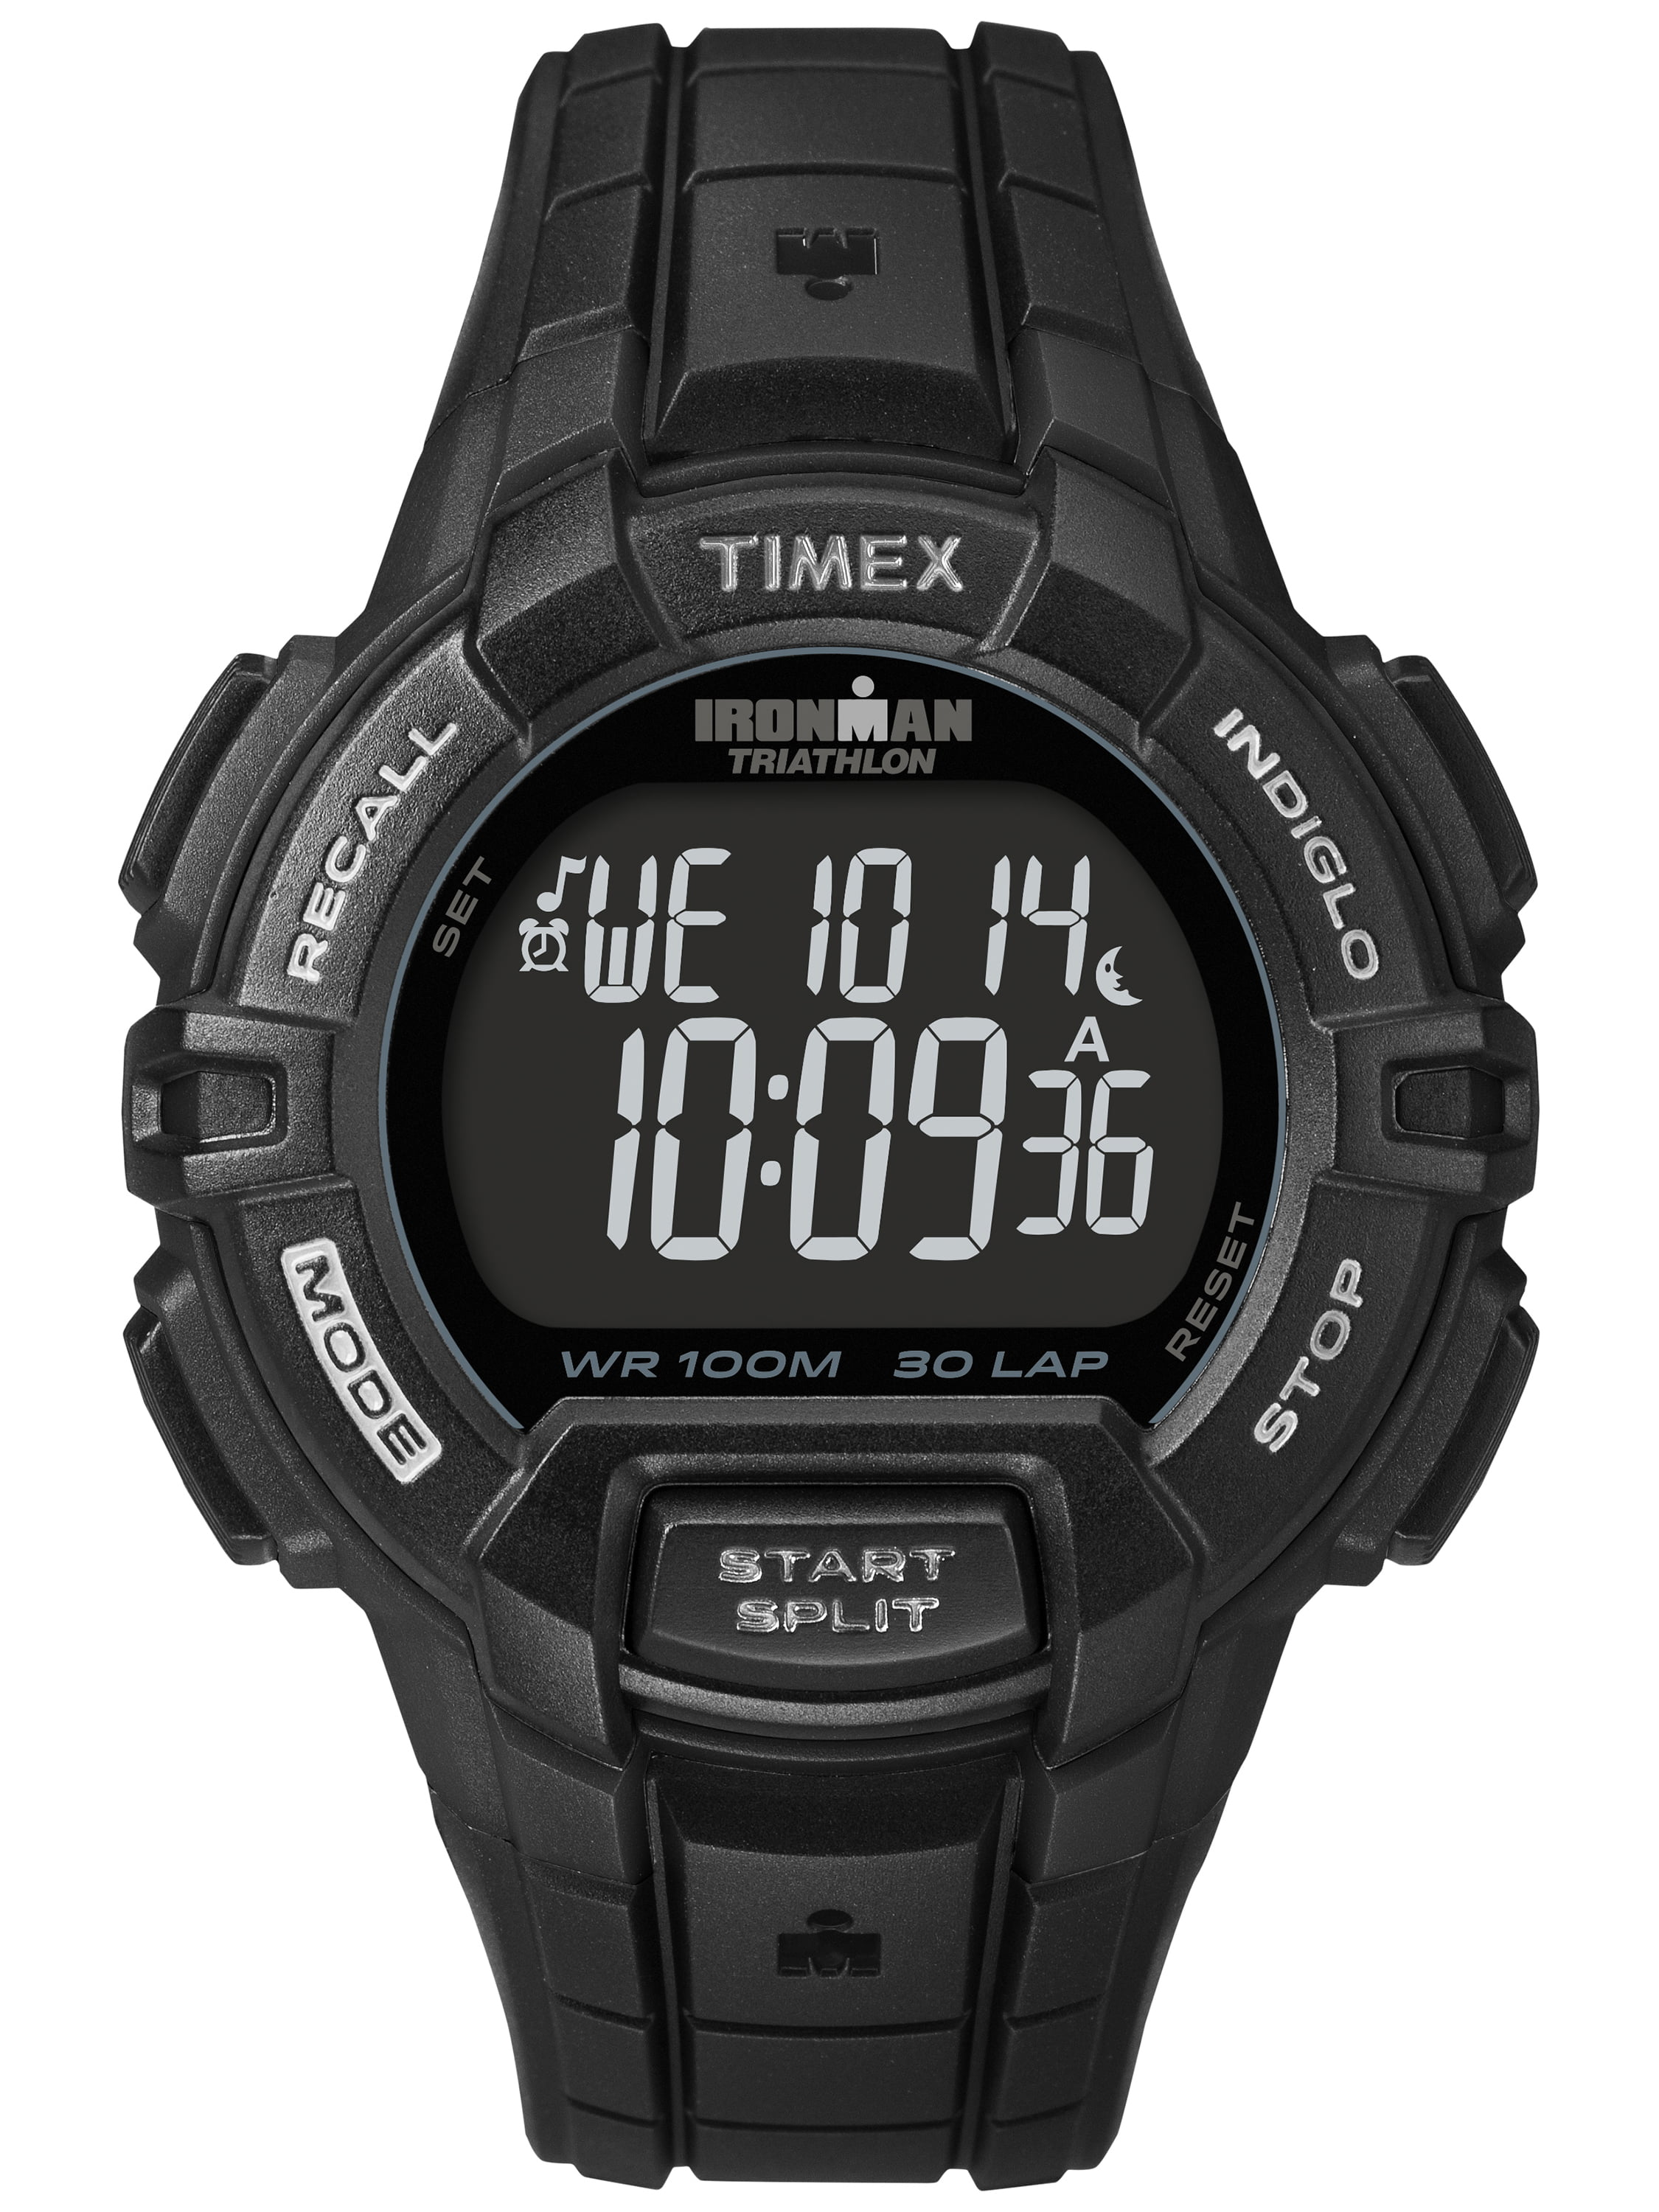 Timex Men's Ironman Rugged 30 Full-Size Watch, Black Resin Strap by Timex